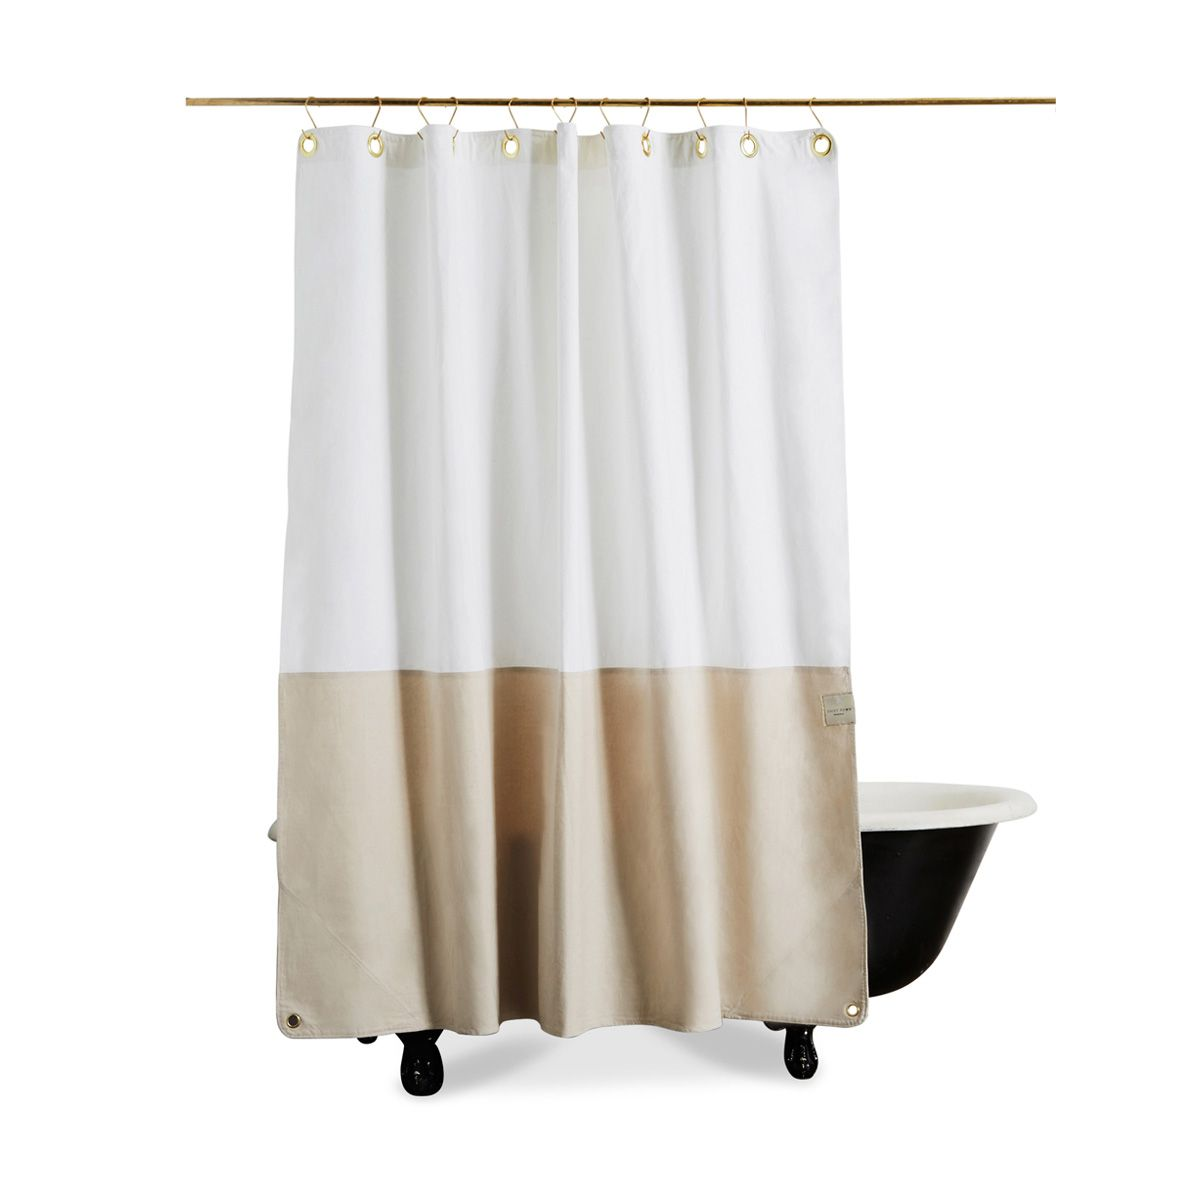 The Orient Canvas Shower Curtain Curtains Shower Curtain